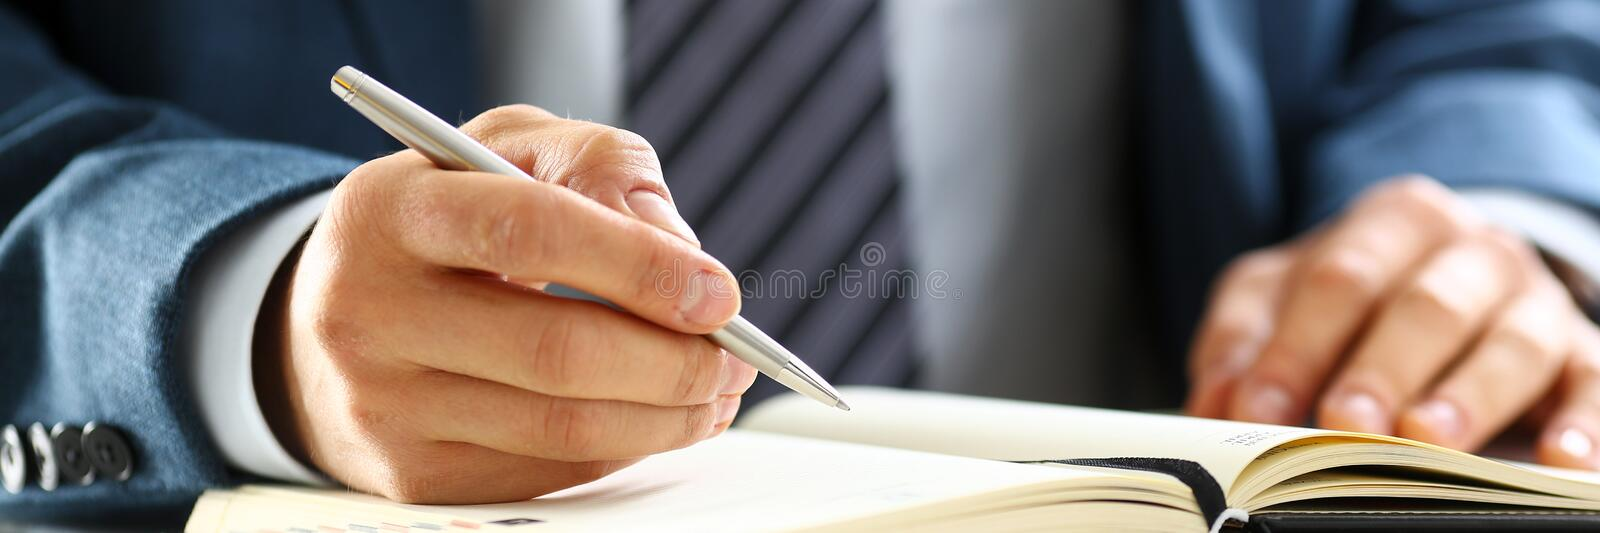 Male arm in suit and tie hold silver pen royalty free stock photo